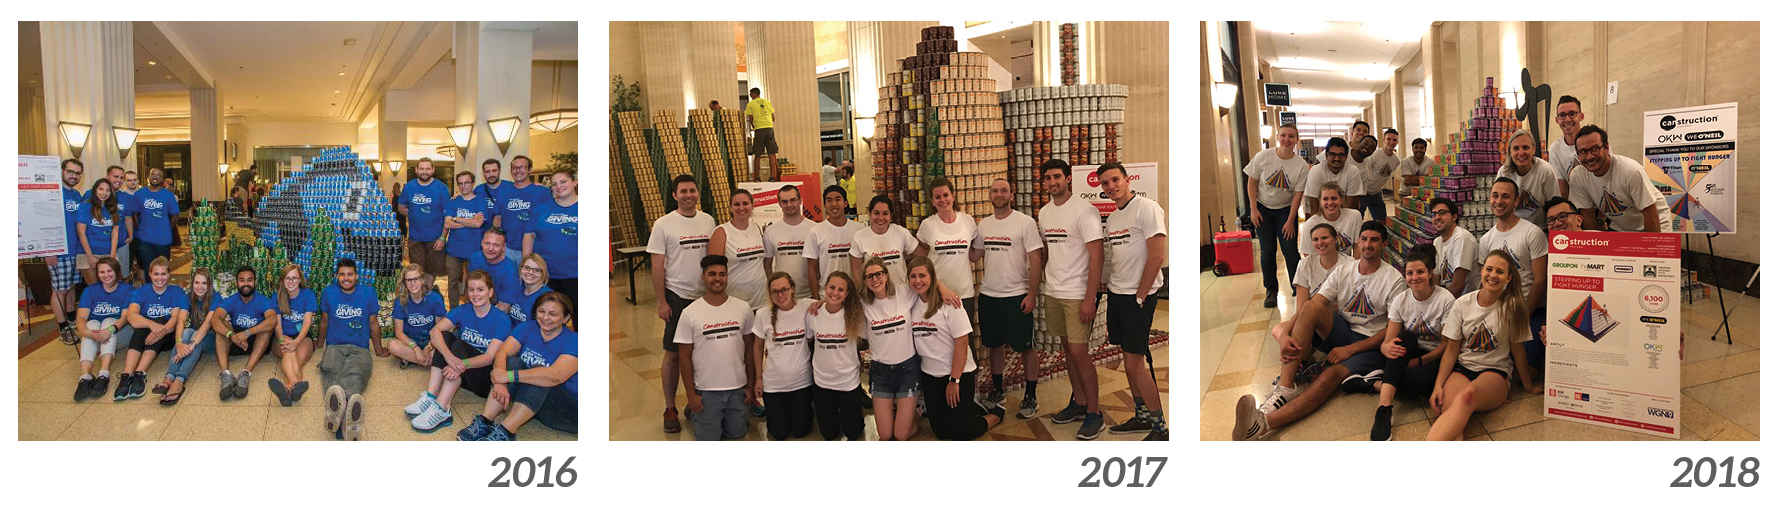 Our last three CANstruction designs: Just Keep Giving (2016), Chicago Style (2017), and Stepping Up for Hunger (2018)